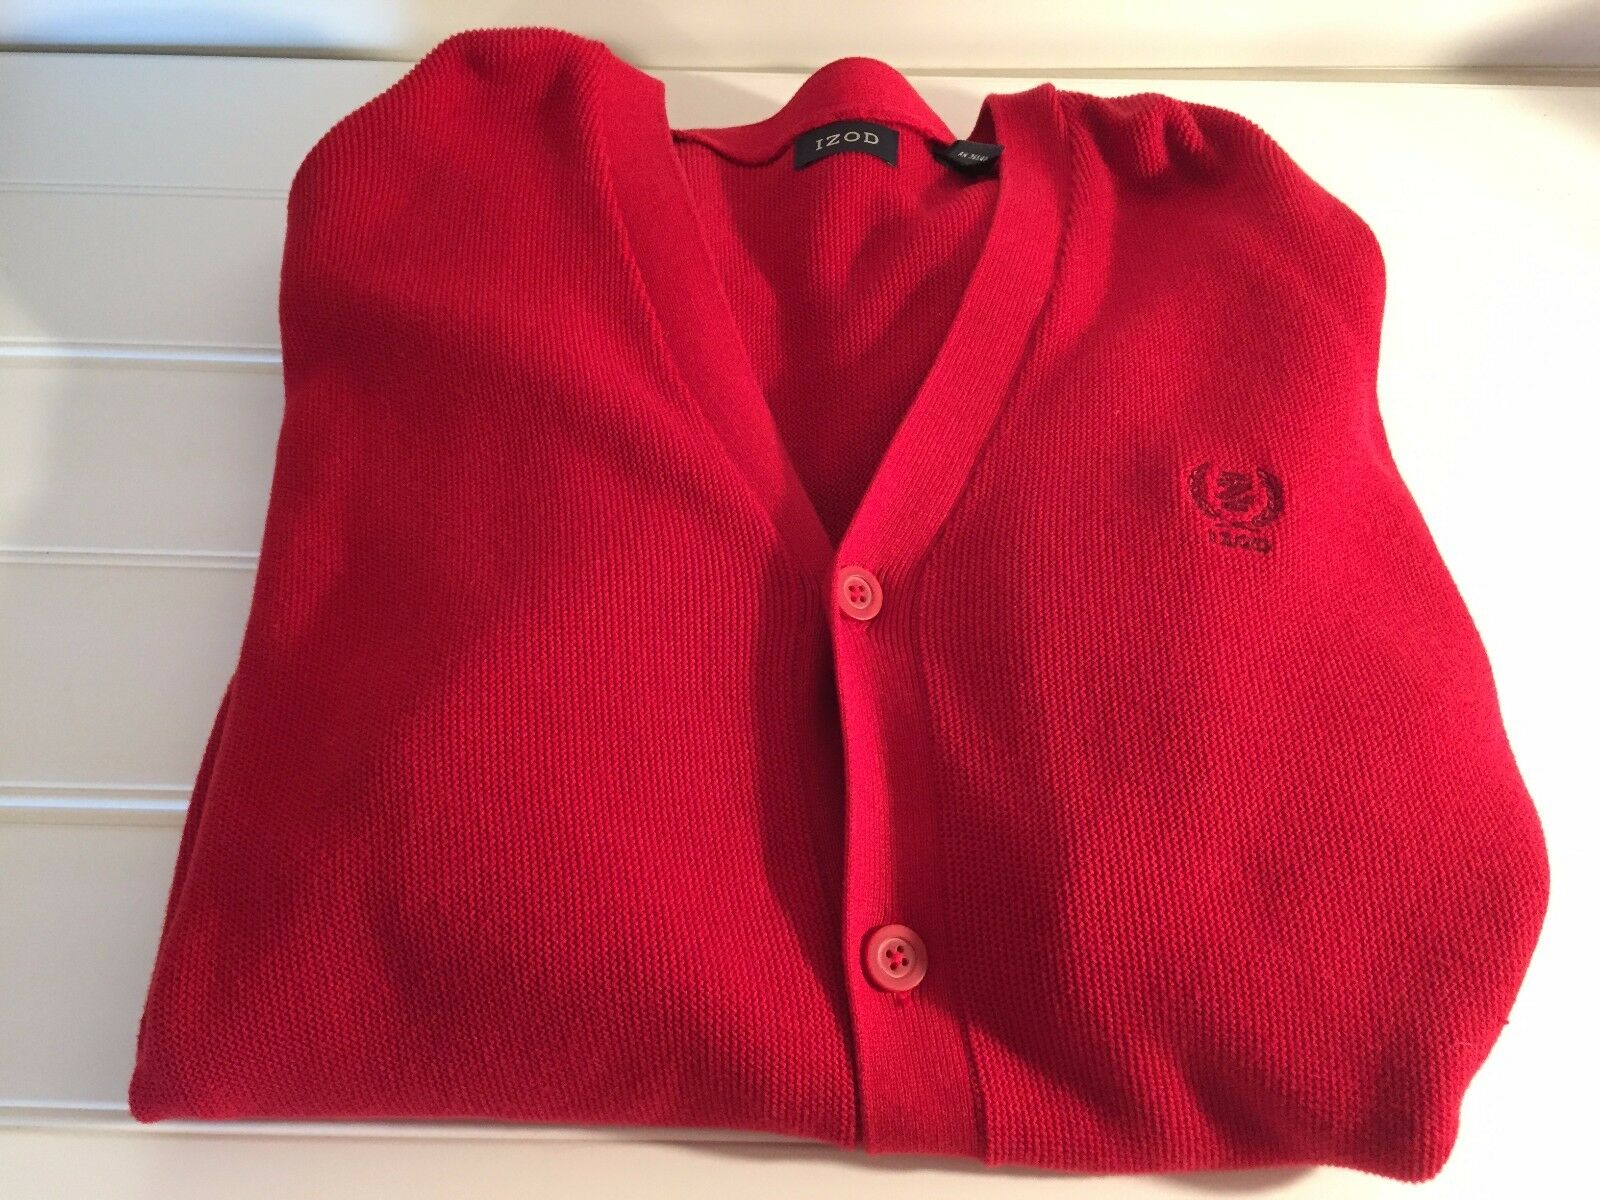 IZOD LACOSTE VINTAGE Red COTTON CARDIGAN SWEATER XL 20394